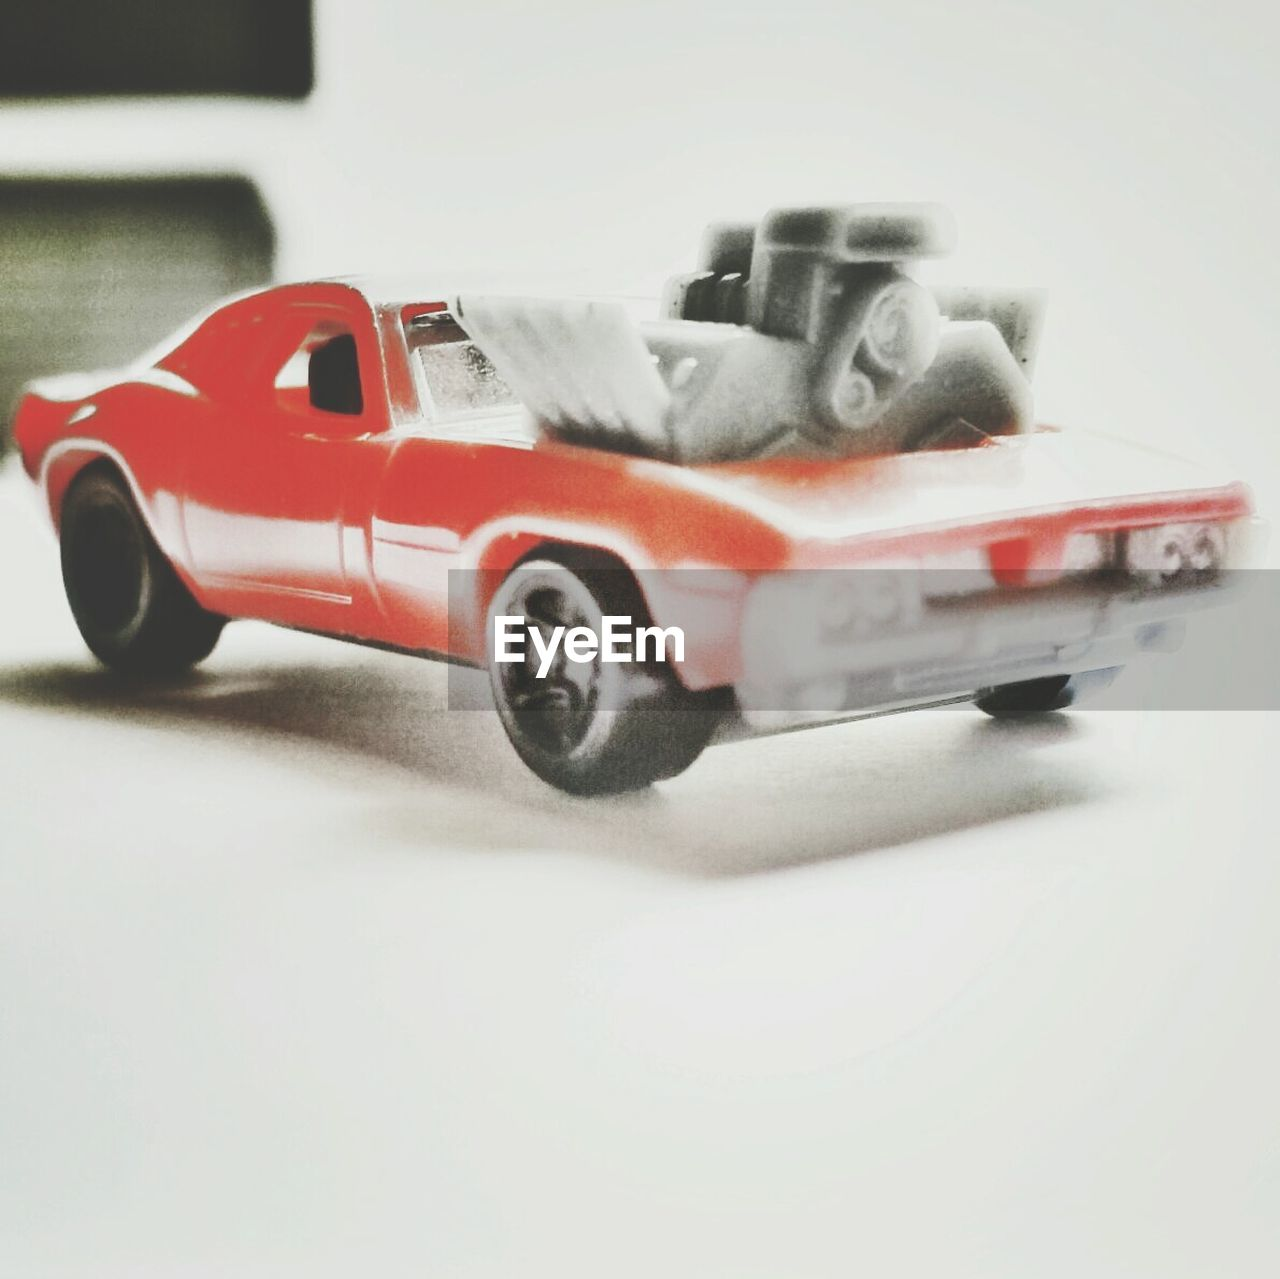 toy, toy car, childhood, car, transportation, plastic, land vehicle, red, no people, studio shot, close-up, racecar, white background, day